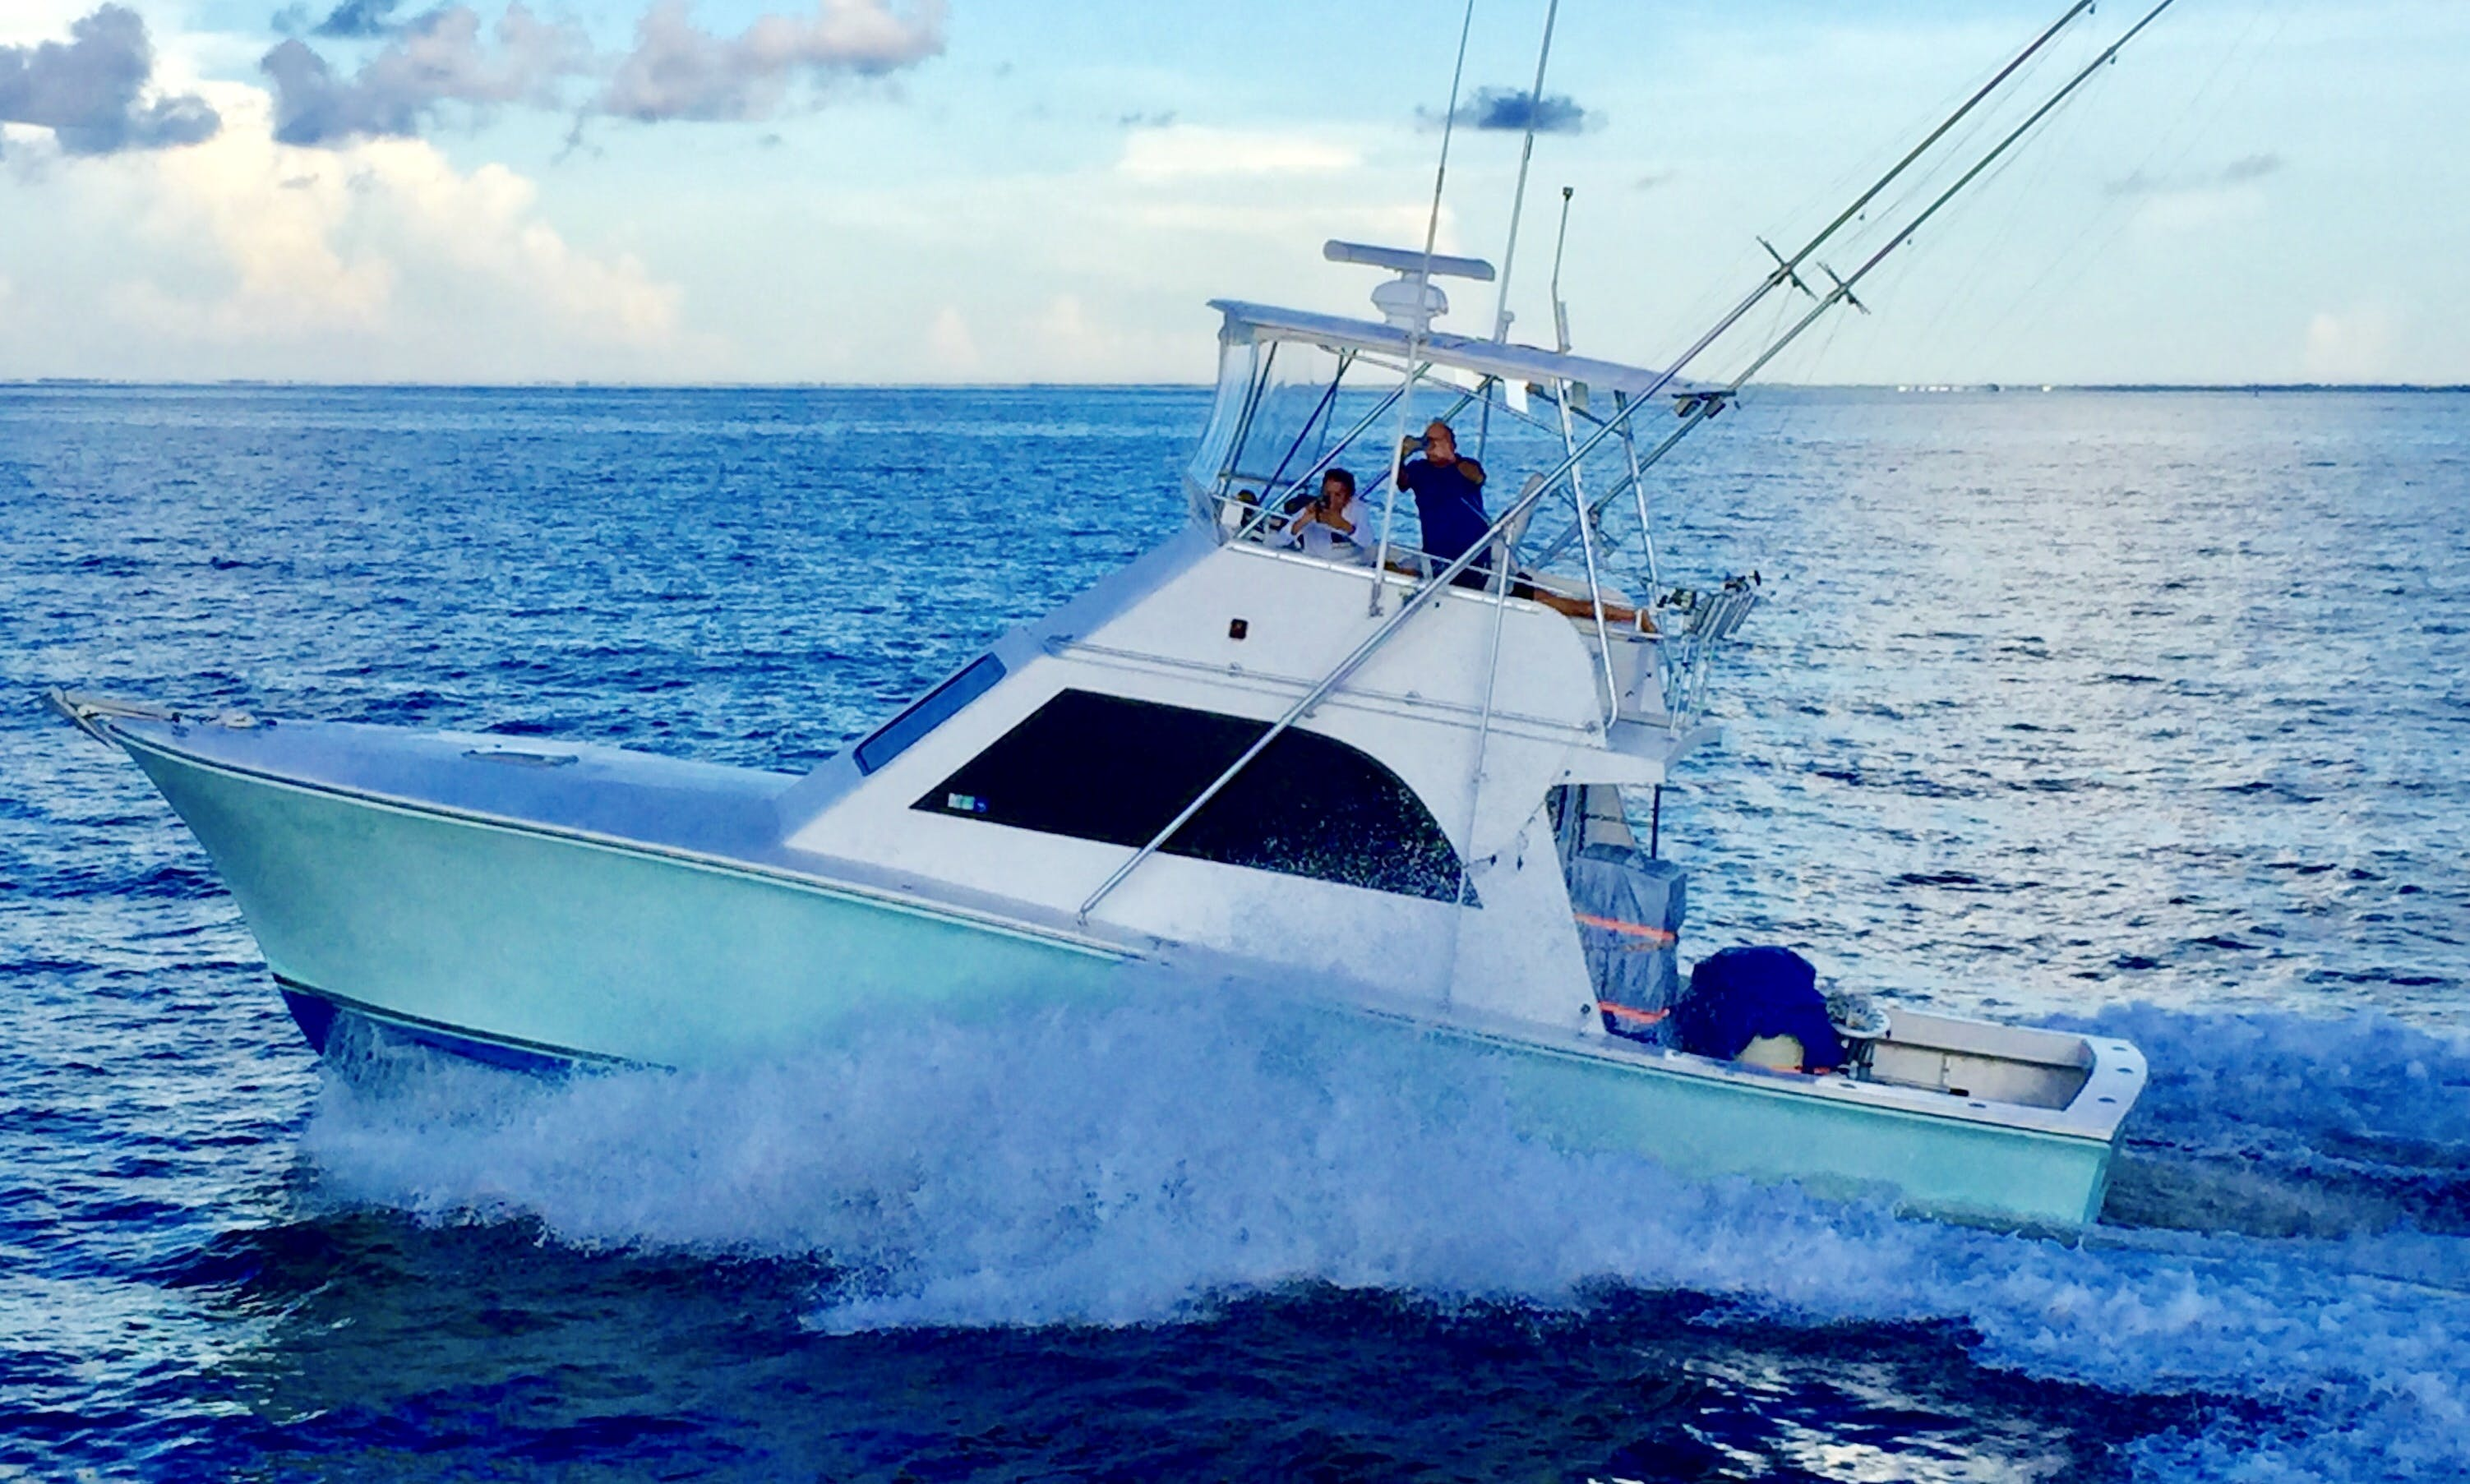 """KEEN M"" 41' Sport Fisherman, Fishing Charter in Isla Mujeres, Mexico"